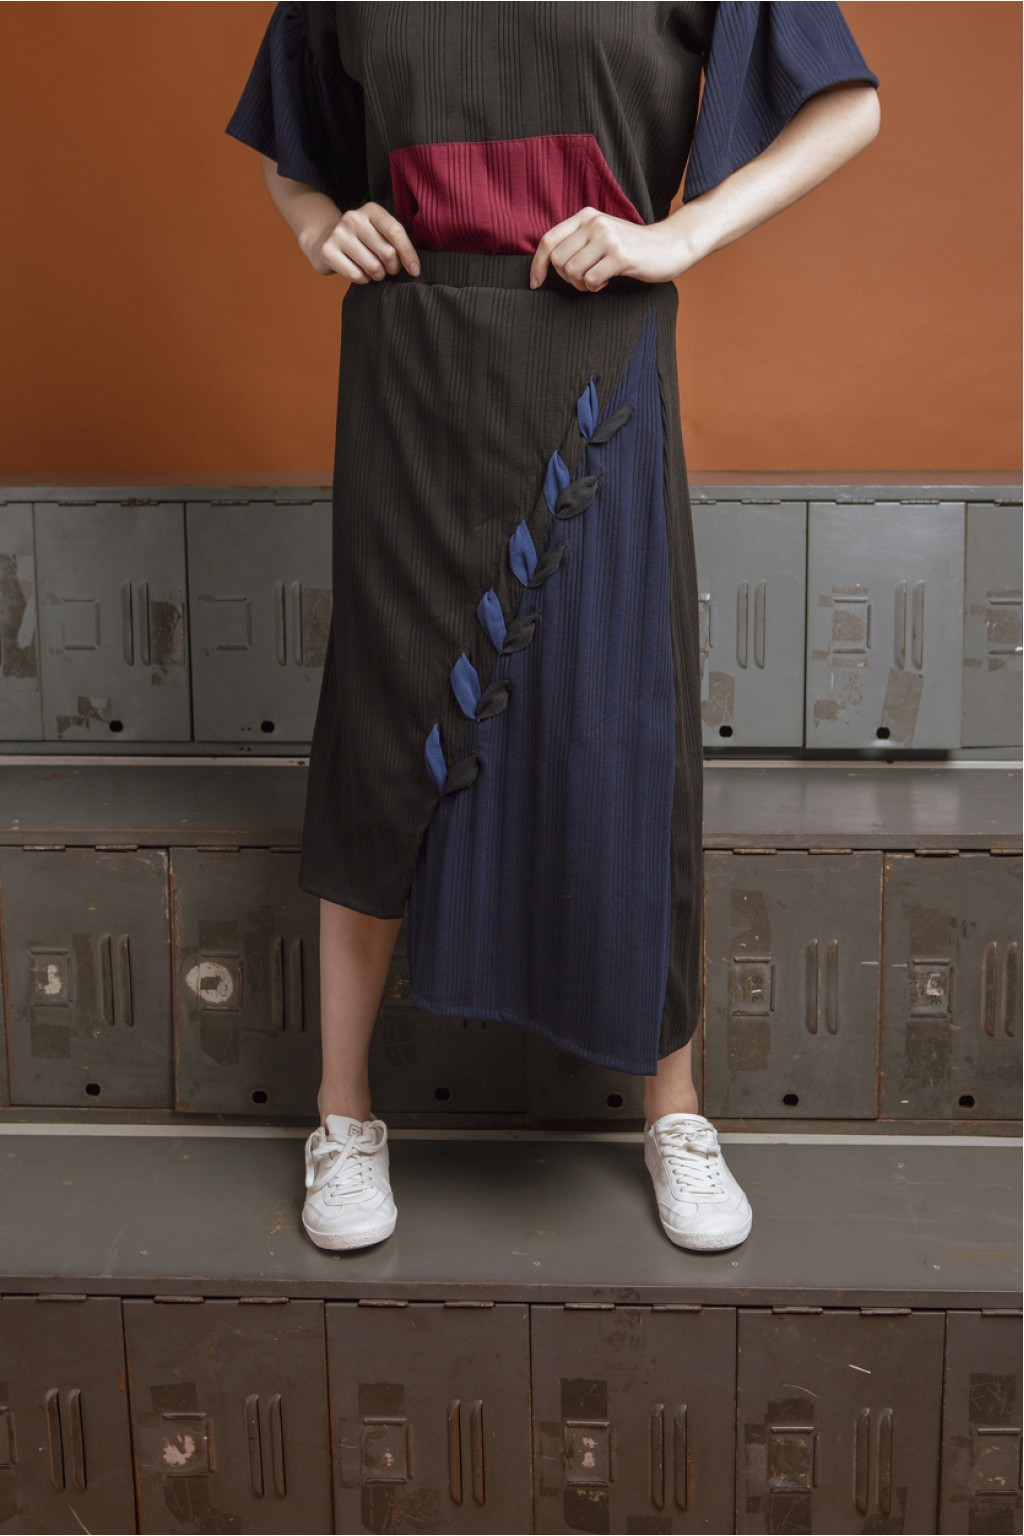 CARTER SKIRT BLACK / NAVY